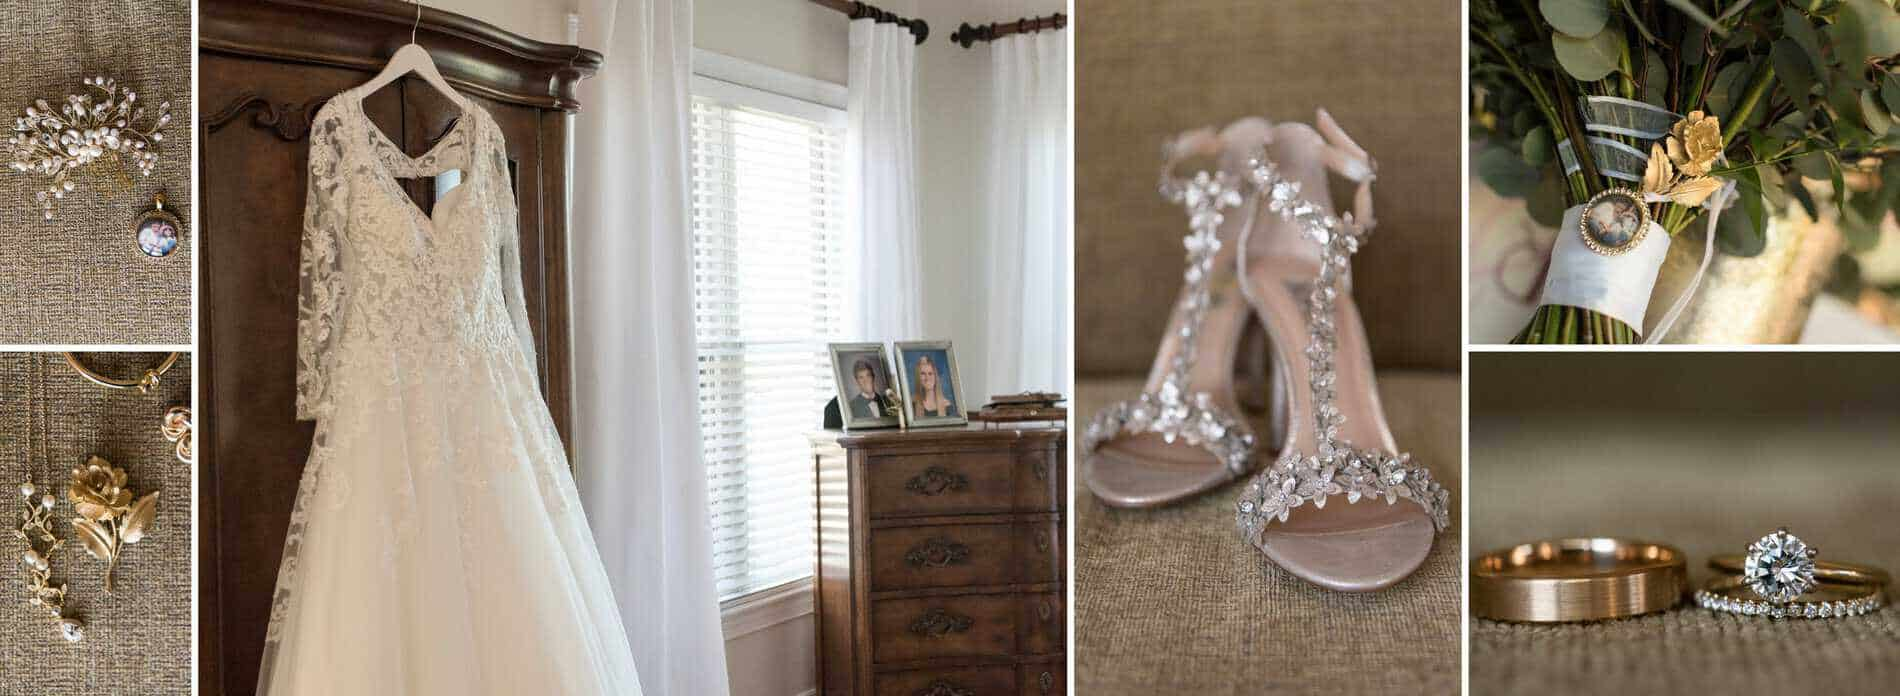 Wedding shoes, dress, rings and flowers